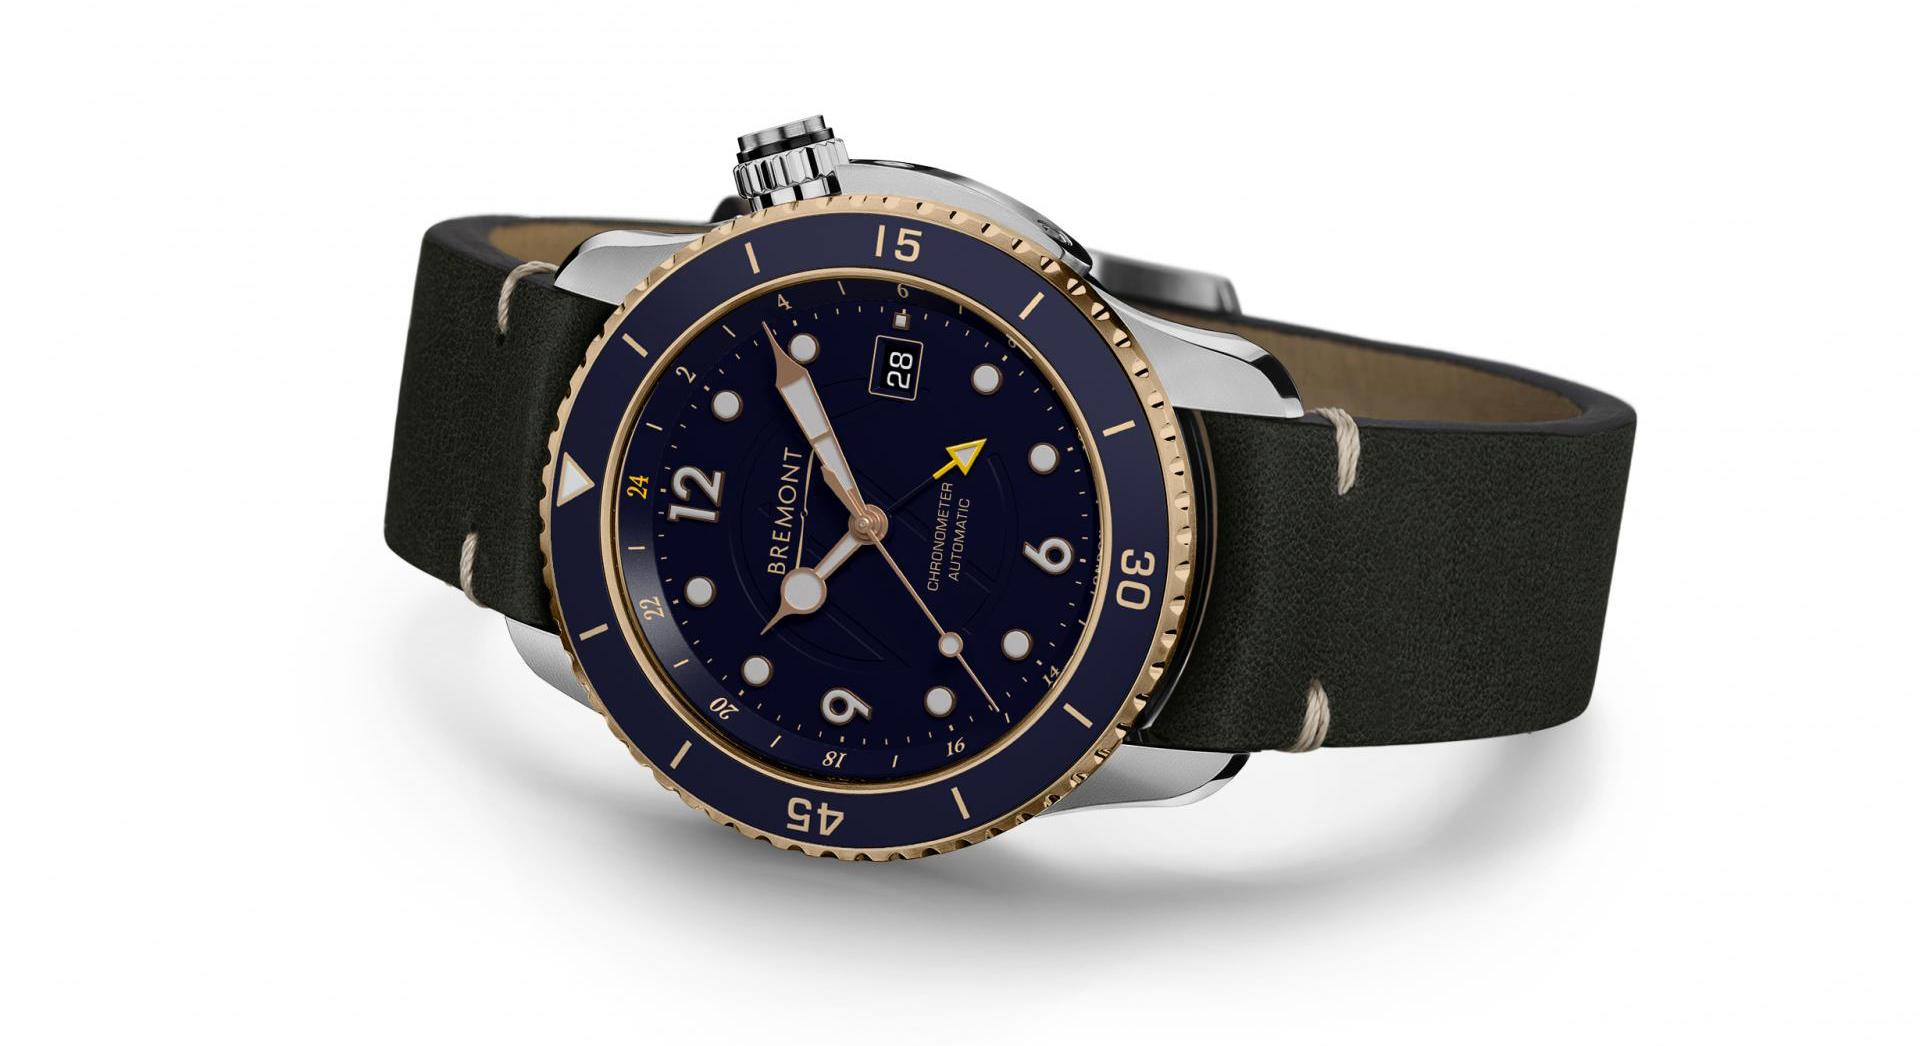 Limited Edition Bremont Project Possible GMT diver watch